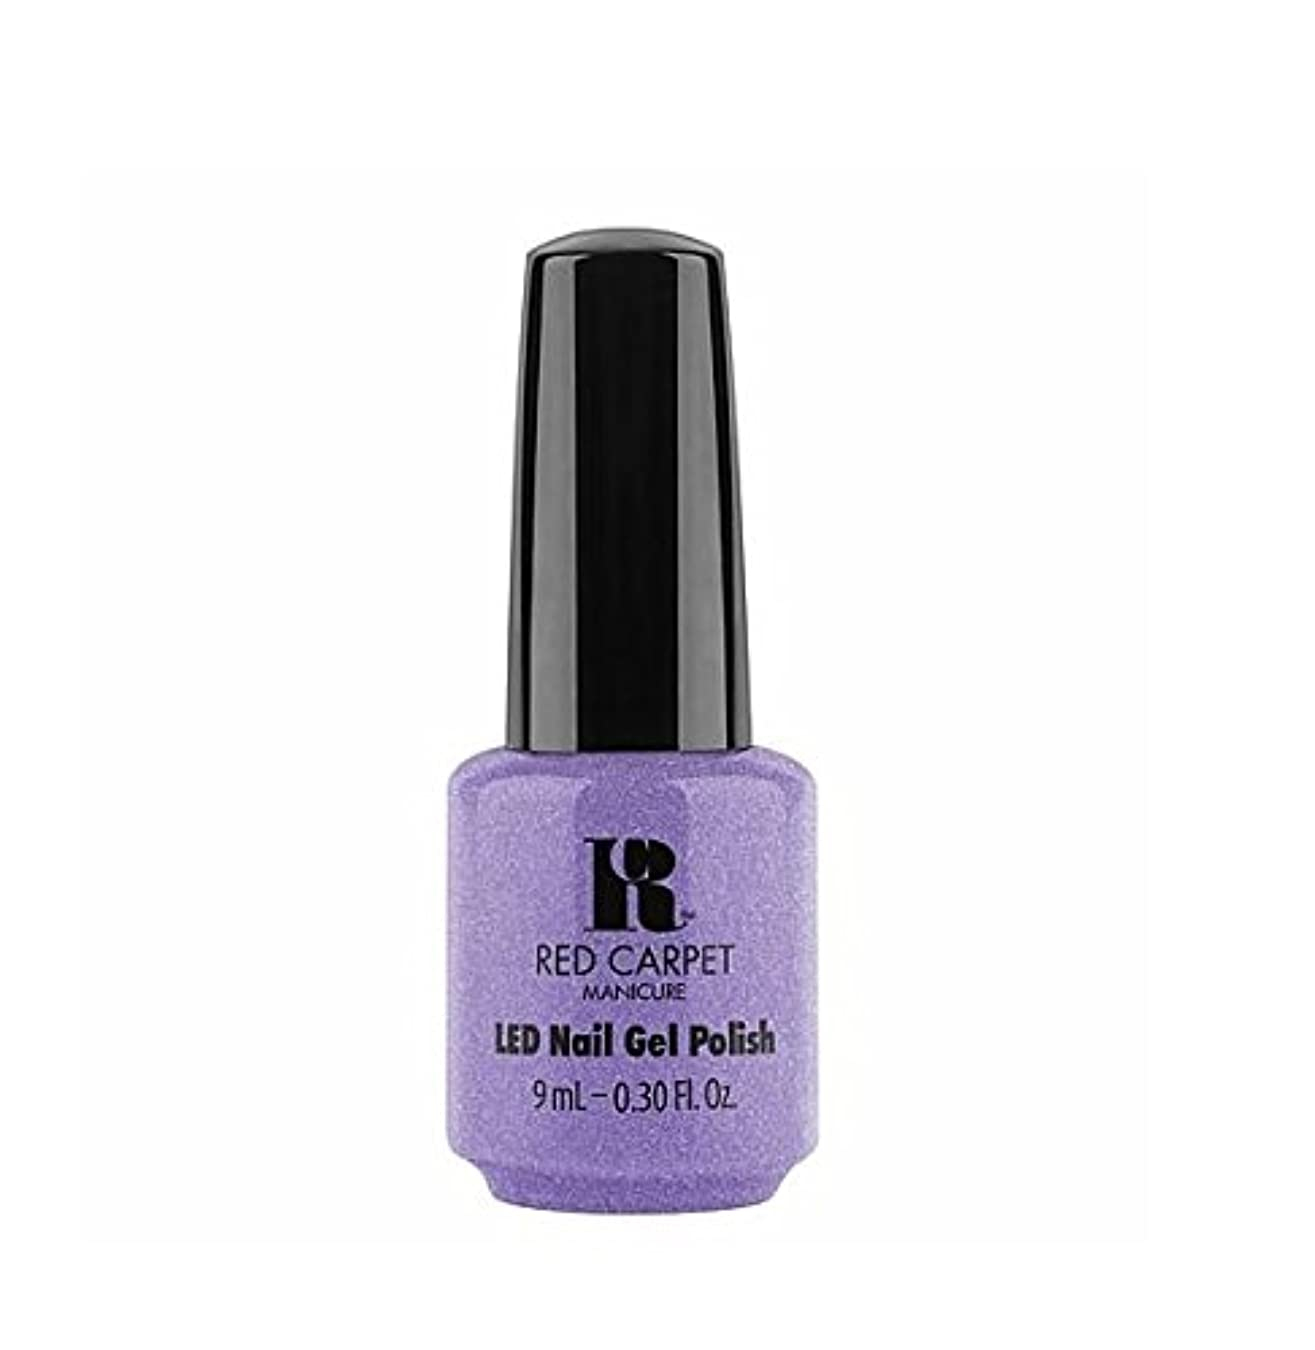 Red Carpet Manicure LED Gel Polish - Flirting With Fringe - 9 ml / 0.30 oz